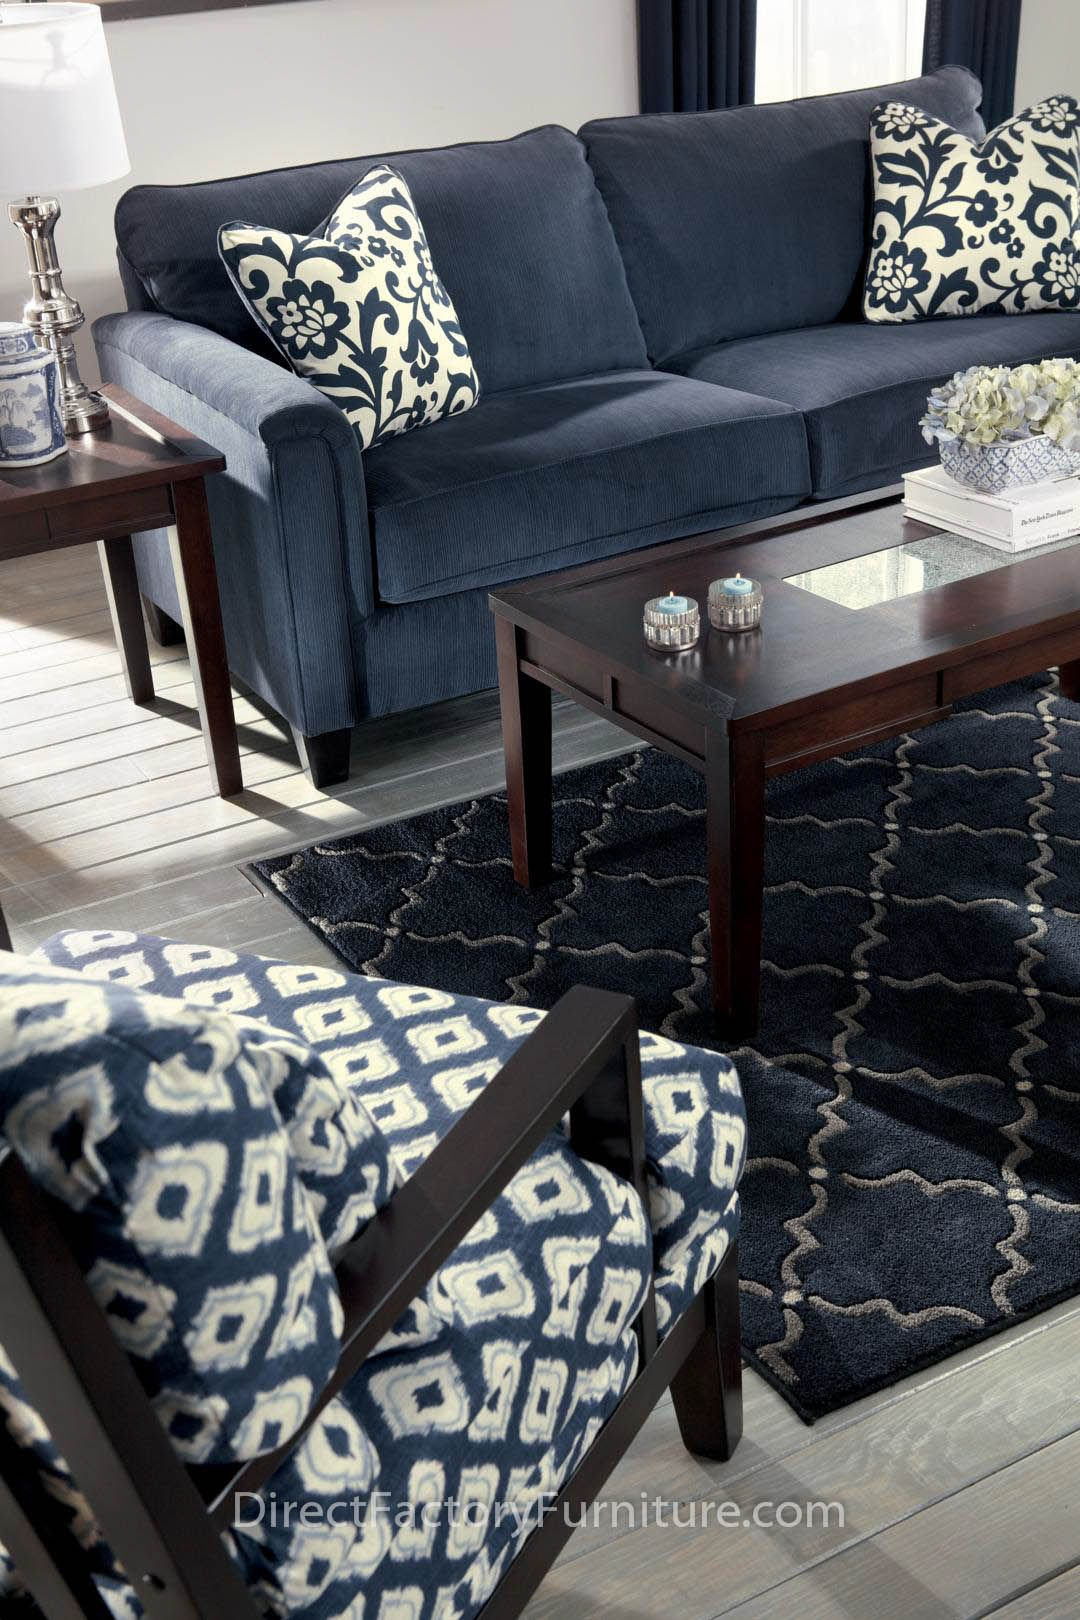 Best Indigo Living Room Set Google Search Interieur Woonkamer Klassiek Interieur 400 x 300